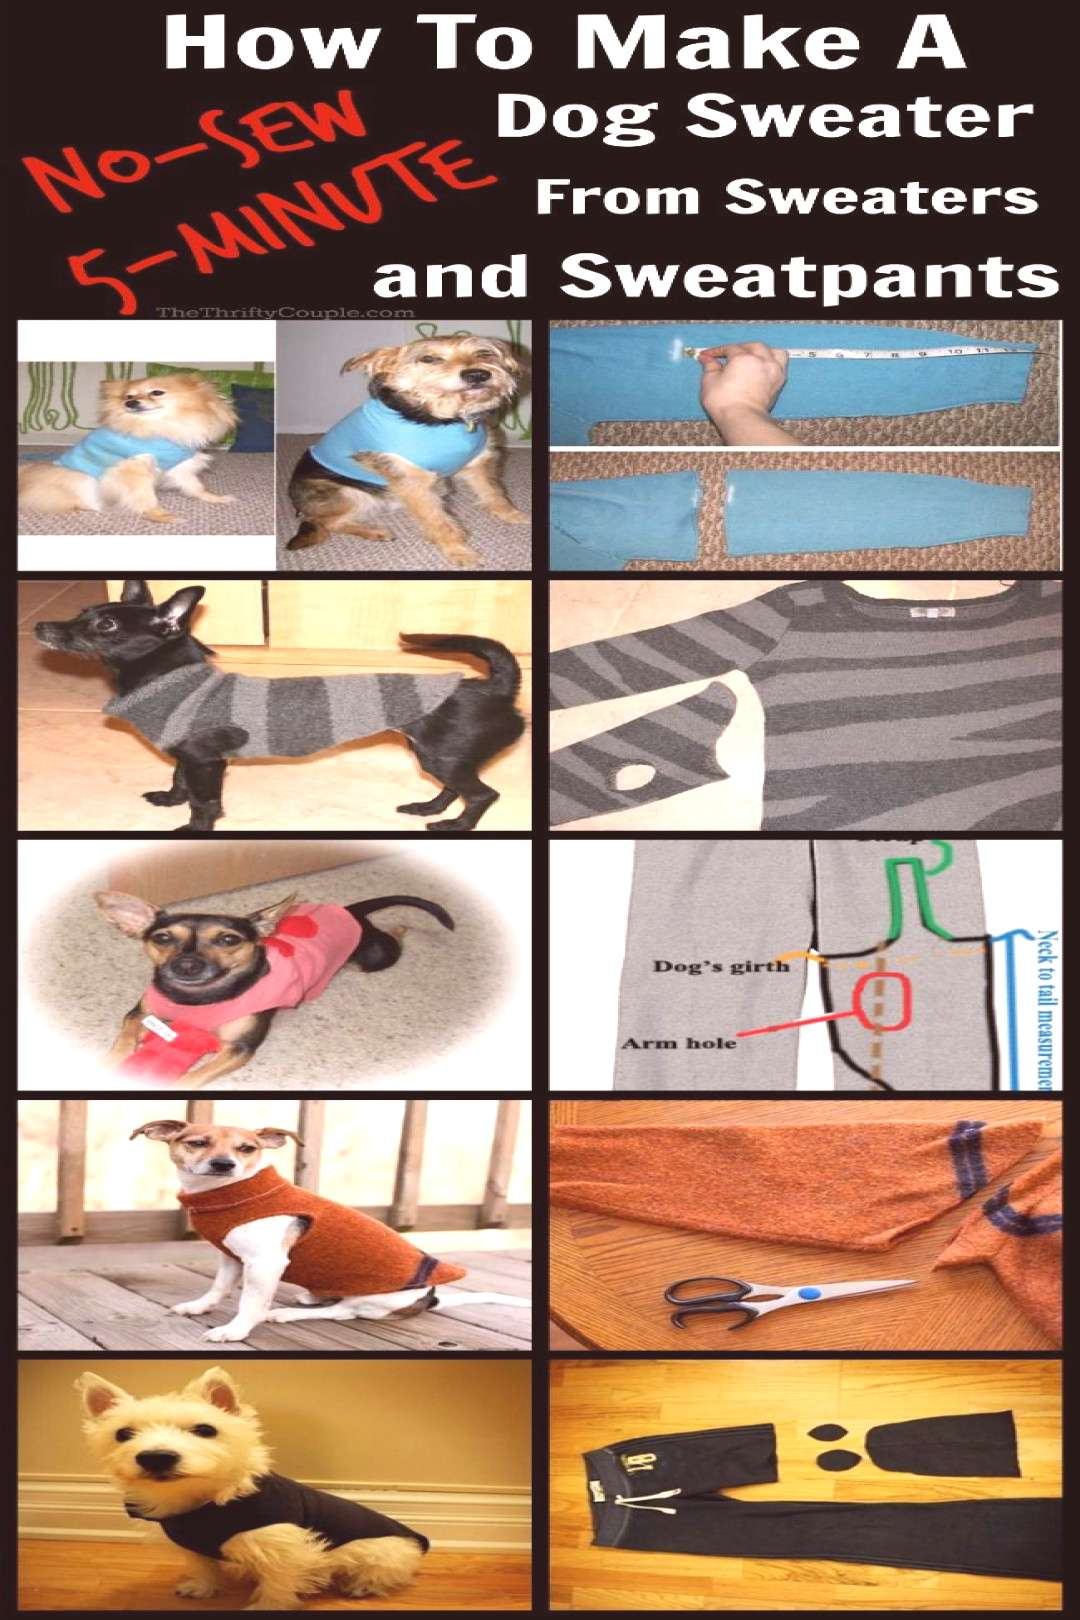 This is AWESOME! Learn how to make a no-sew dog sweater or pet sweater from a sleeve or pant leg fr